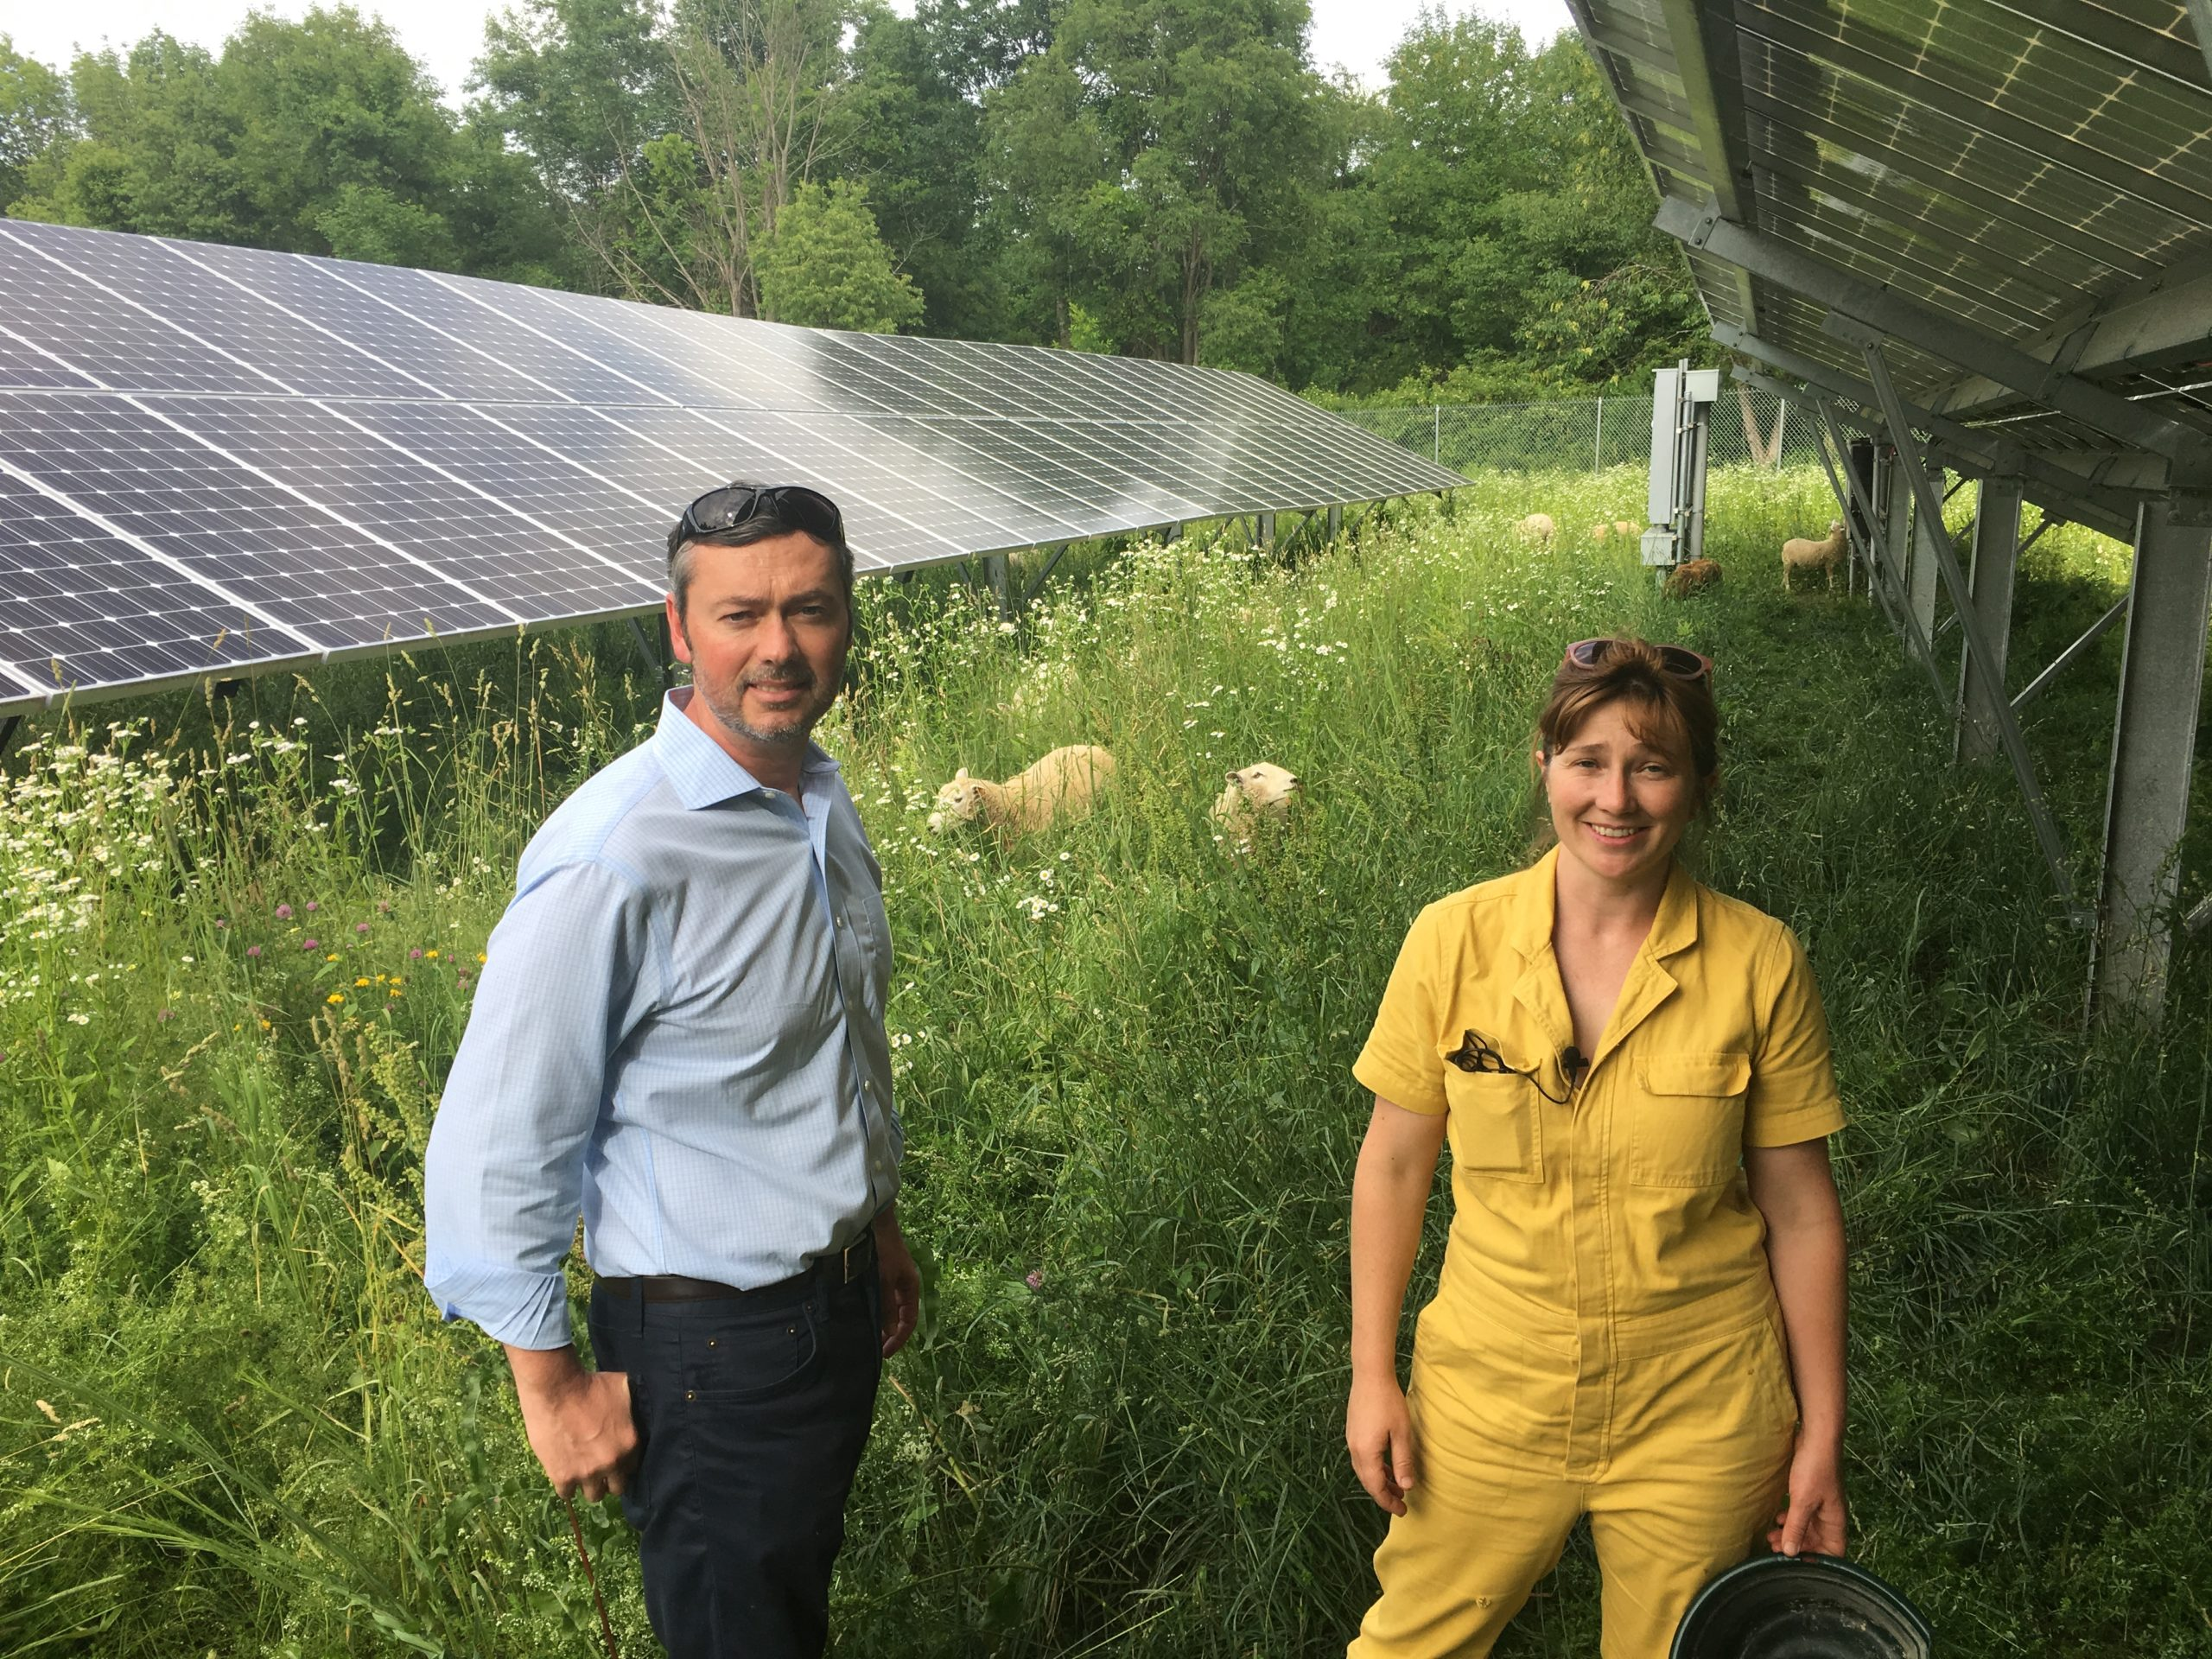 Ashley Bridge on thesolarsite she manages, with her boss from thesolarcompany. Solar panels, grass, and sheep grazing in the background